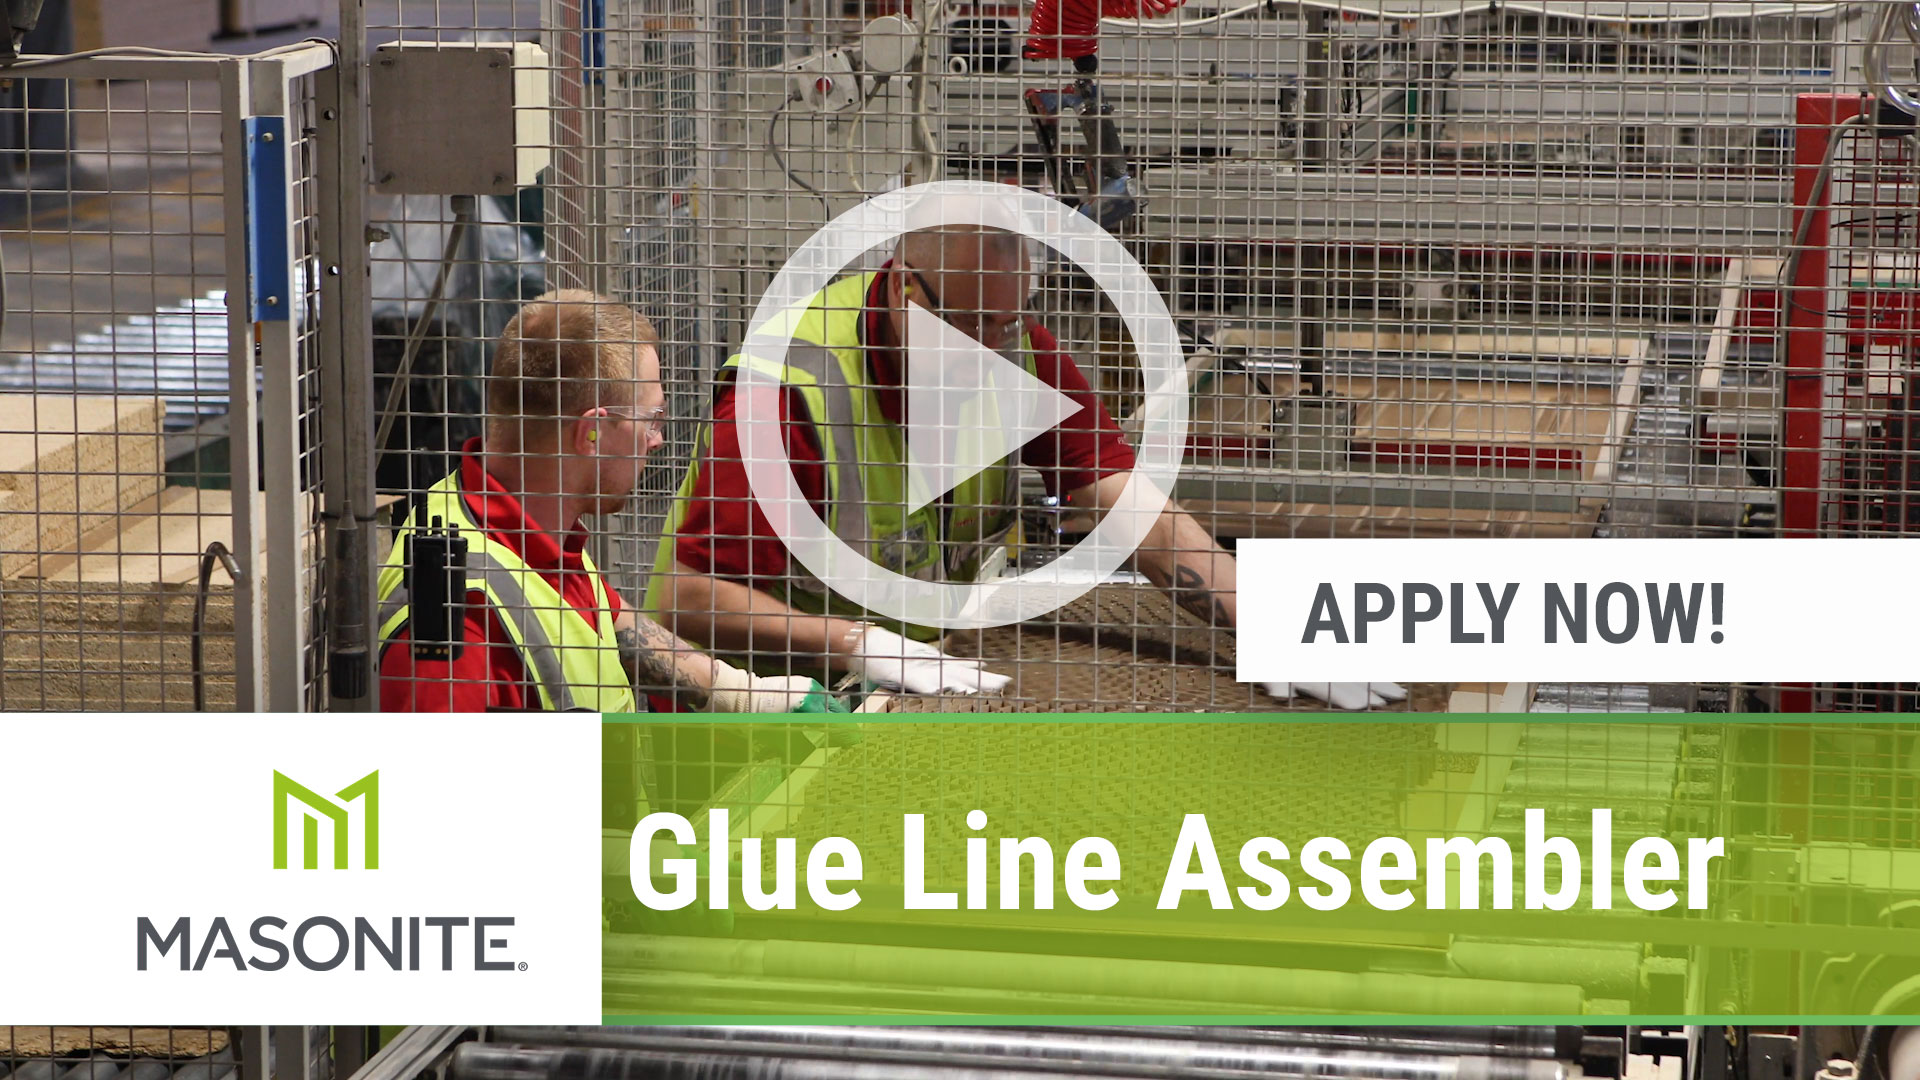 Watch our careers video for available job opening Glue Line Assembler in Northumberland, PA, USA